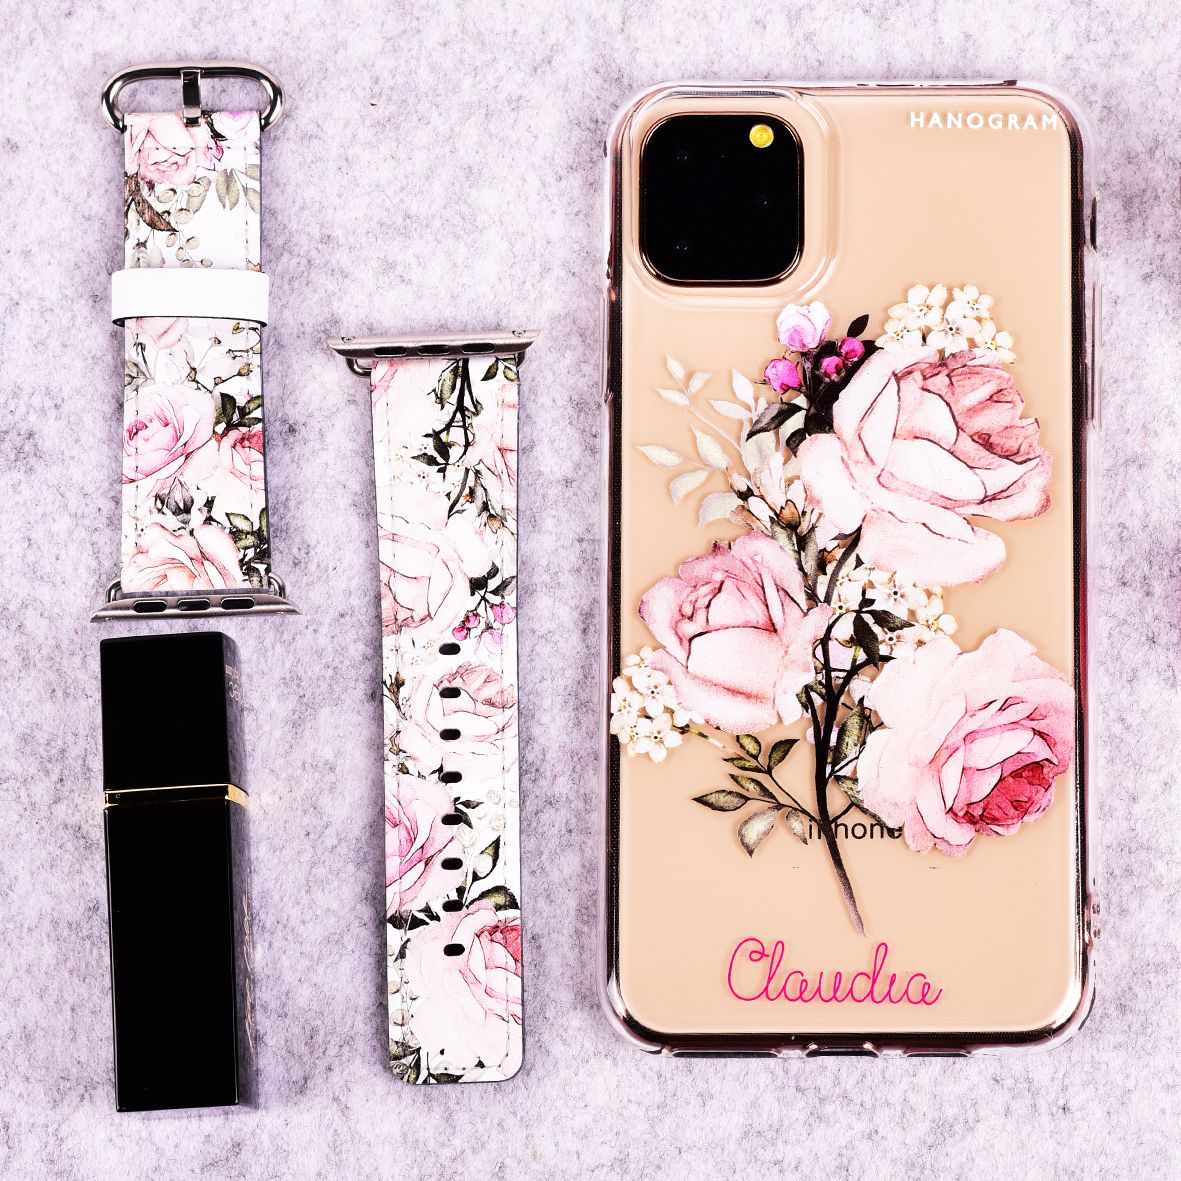 Elegant rose ii iphone 11 pro max frosted bumper case in